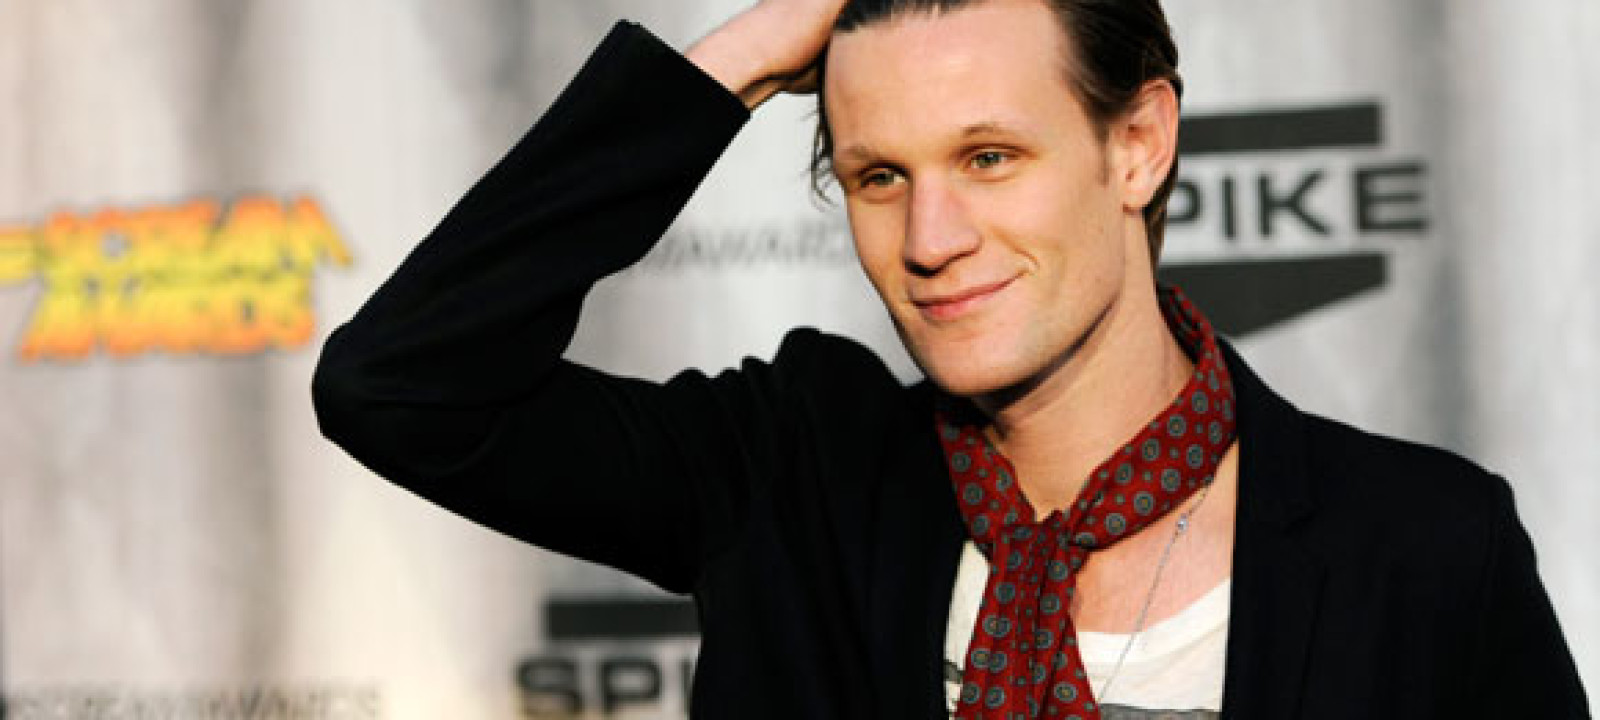 580x385_mattsmith_scream